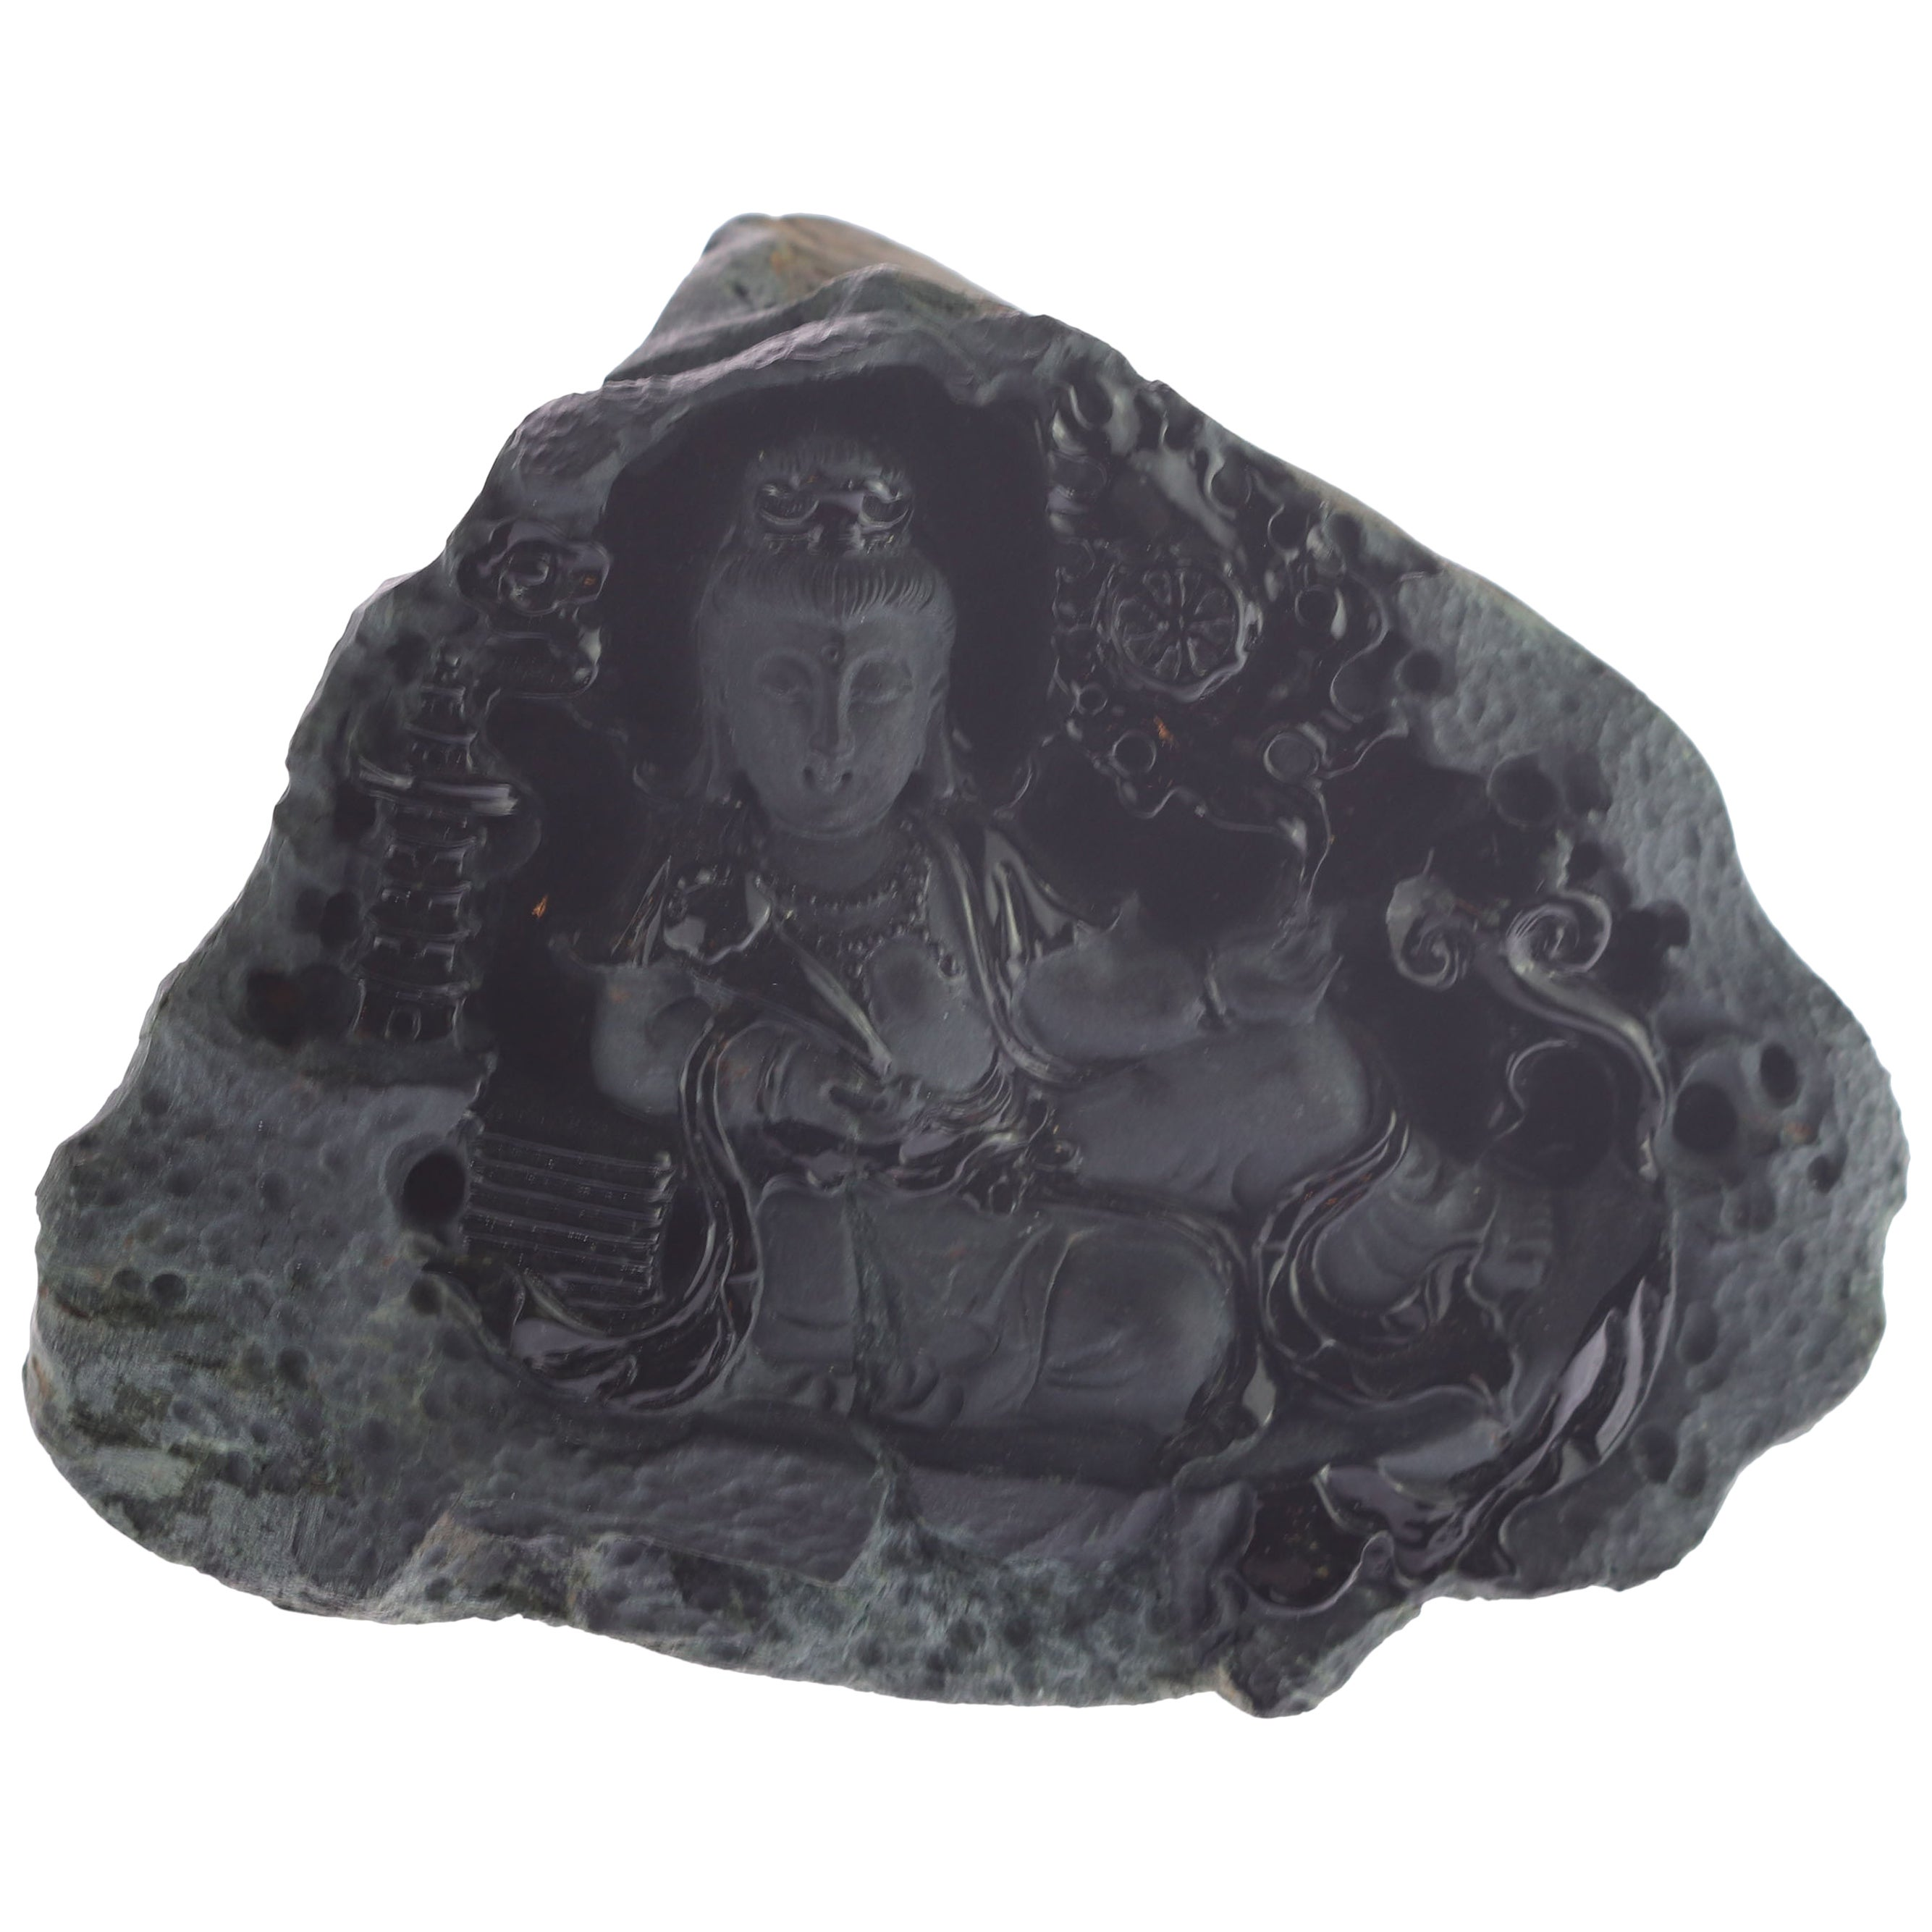 Black Jade Guanyin Bodhisattva Female Buddha Asian Art Carved Statue Sculpture